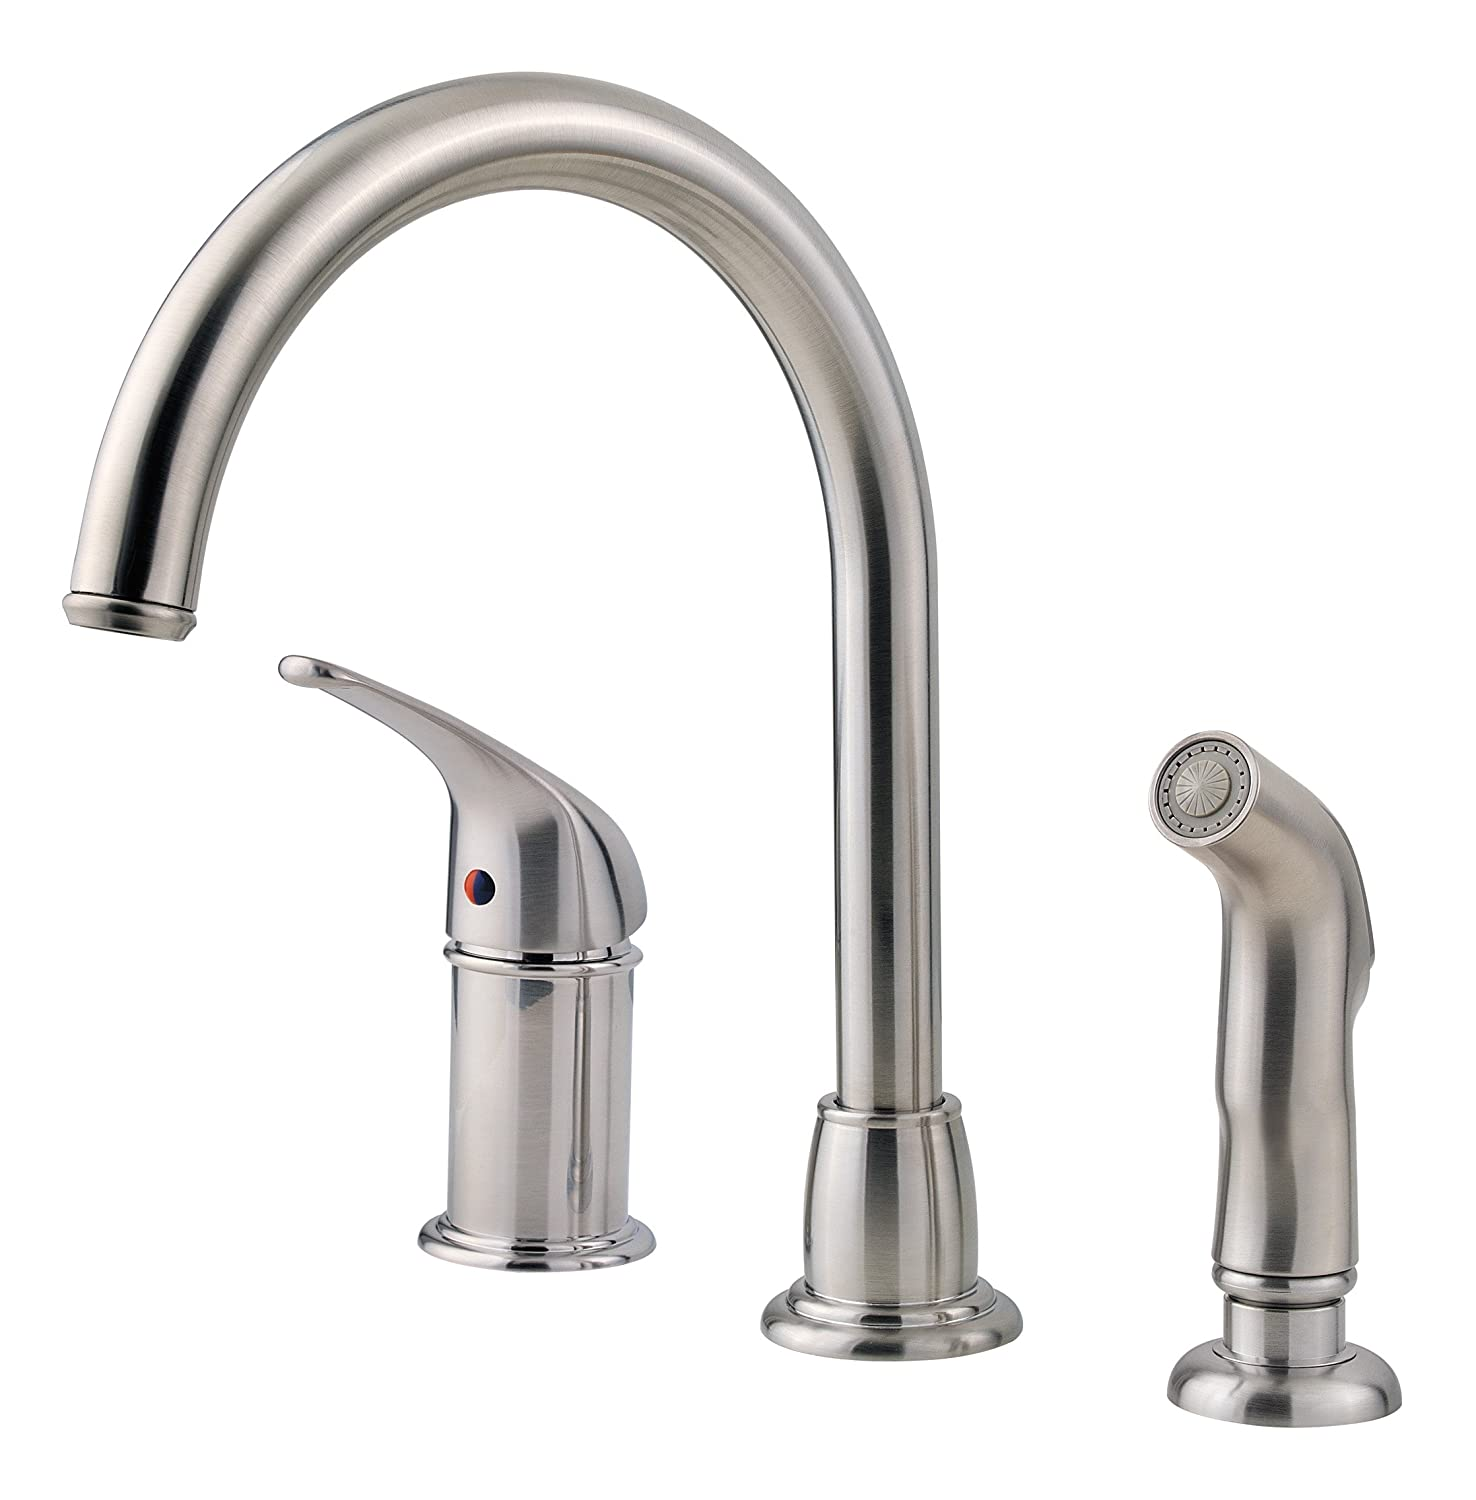 Excellent Pfister Lf Wk1 680S Cagney 1 Handle Kitchen Faucet With Side Spray In Stainless Steel 1 8Gpm Beutiful Home Inspiration Xortanetmahrainfo